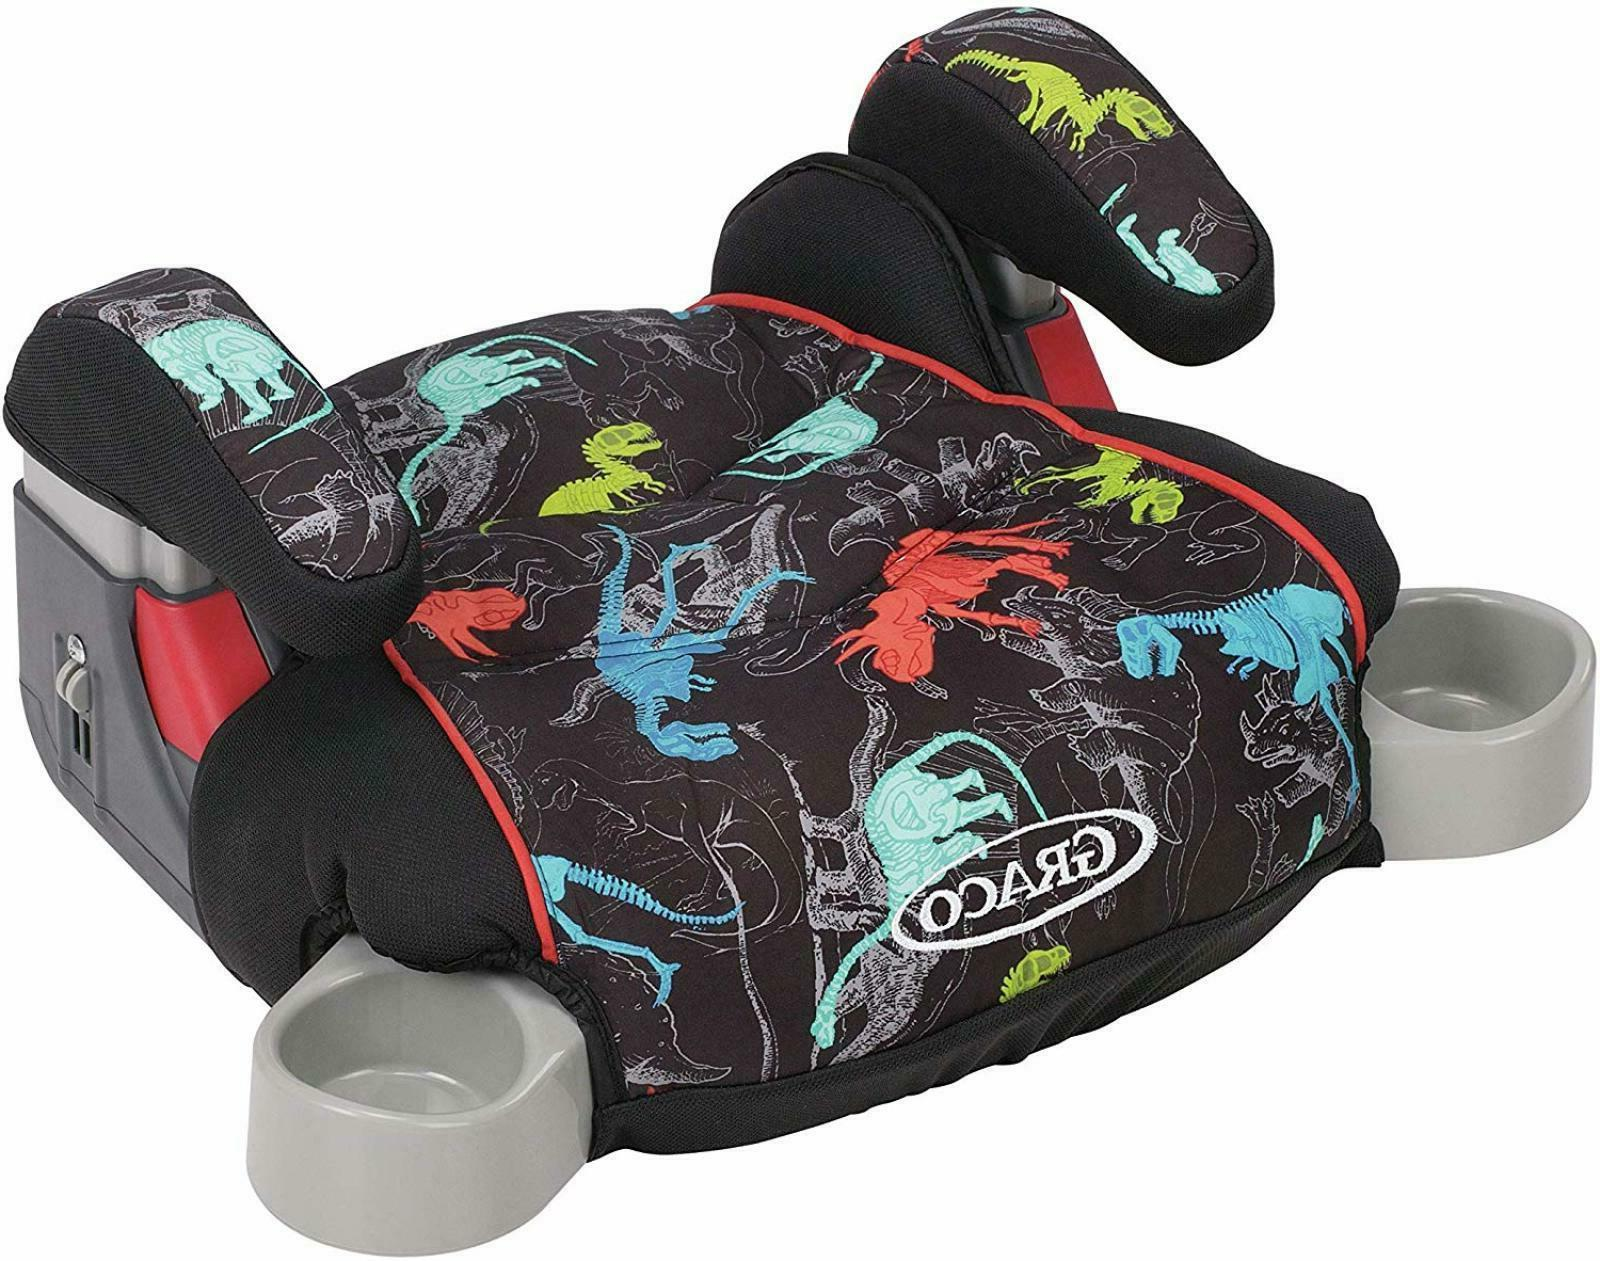 Graco TurboBooster Backless Car Seat Kids Baby Safety Seat B